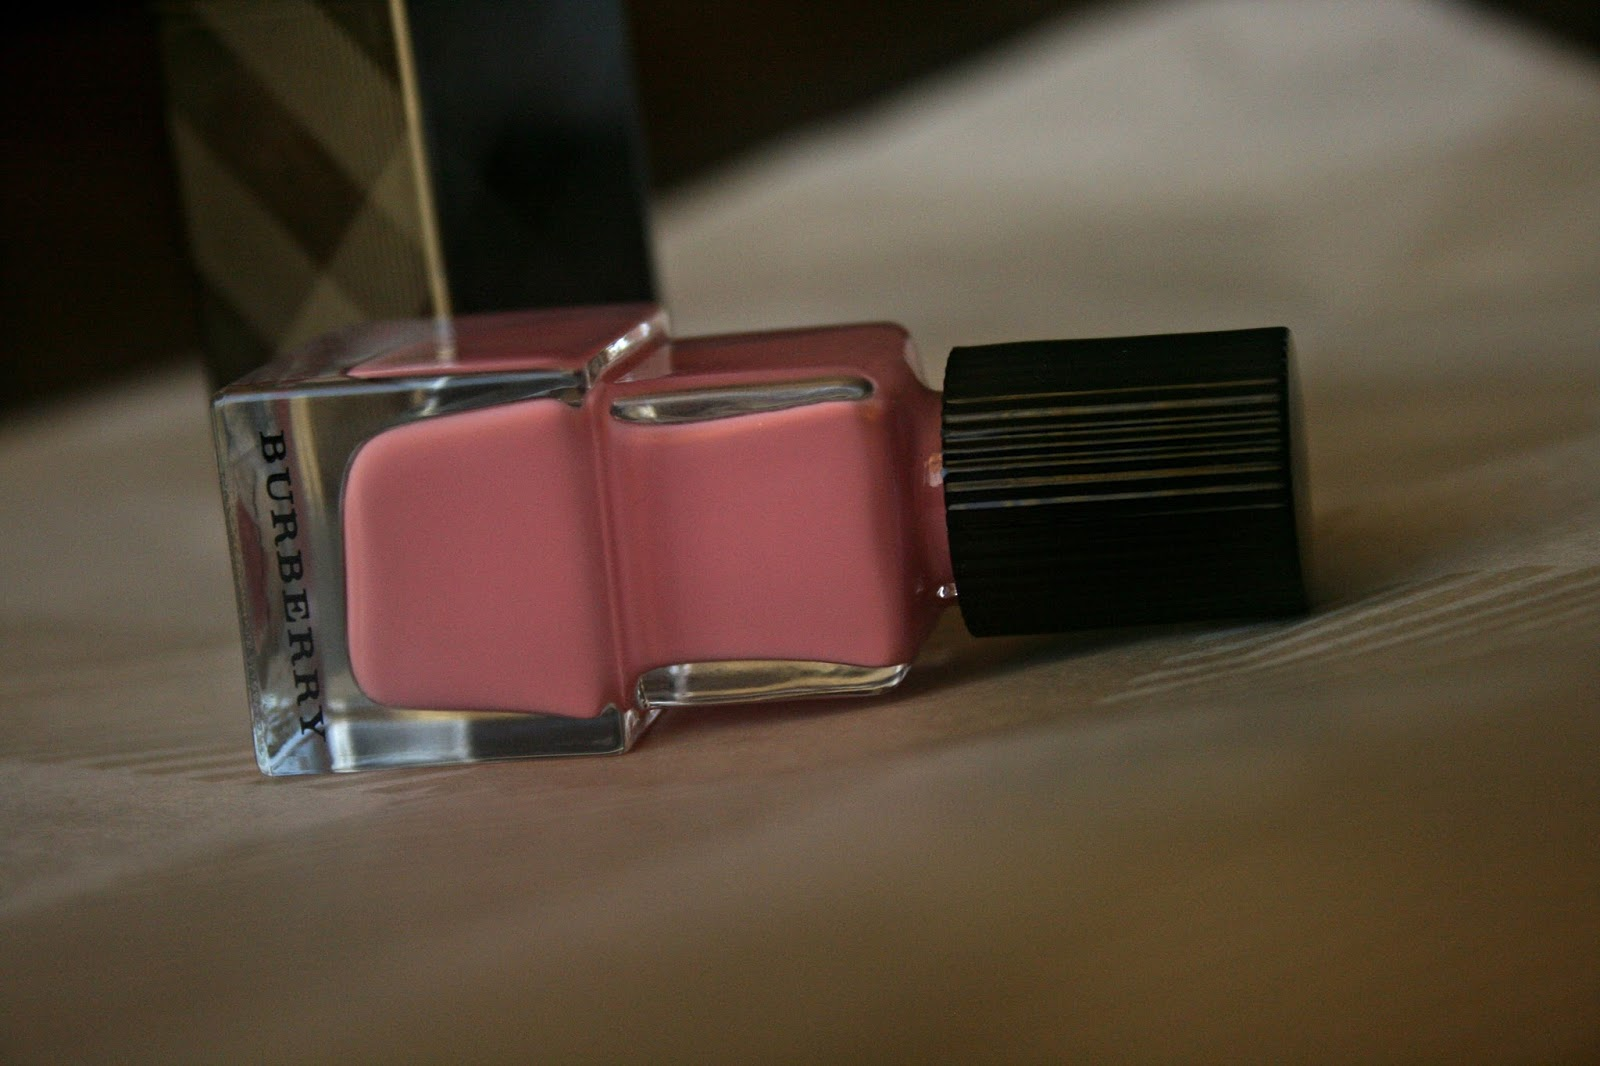 Burberry Beauty Nail Polish in Rose Pink No. 400 Review, Photos & Swatches